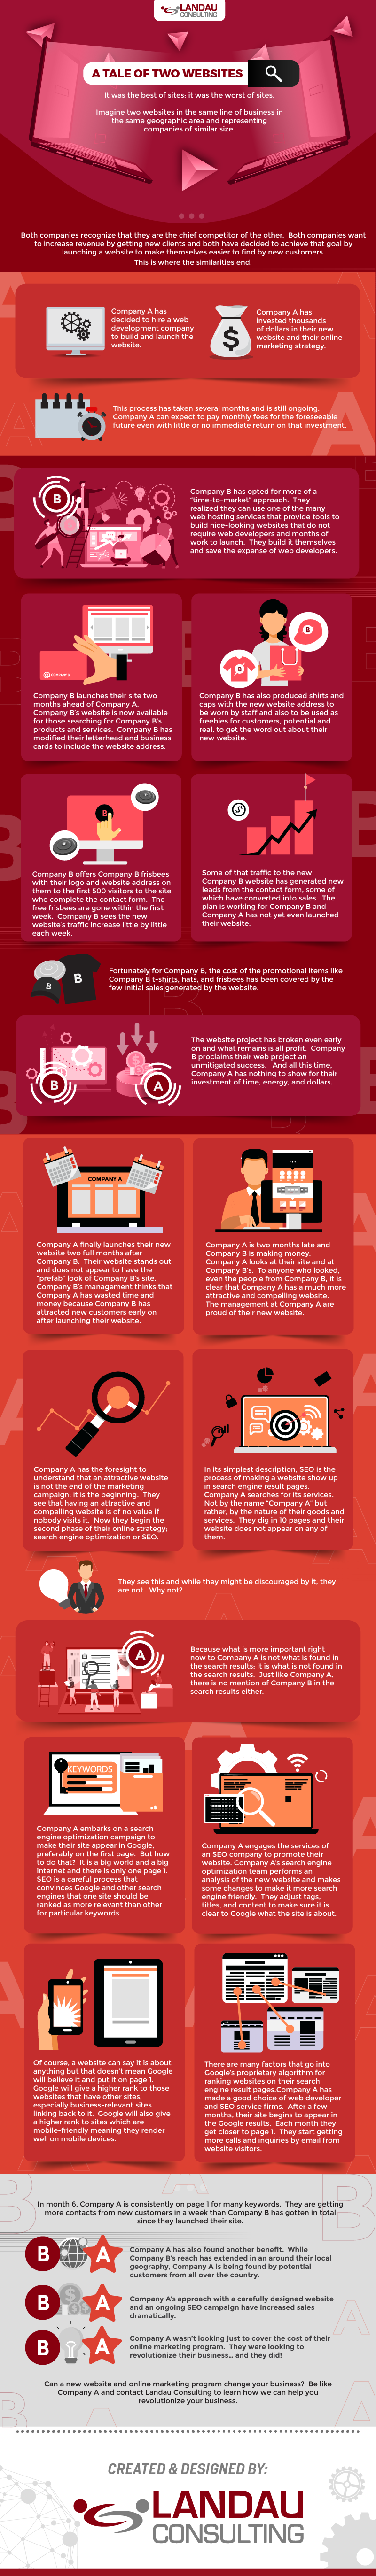 A Tale of Two Websites #infographic